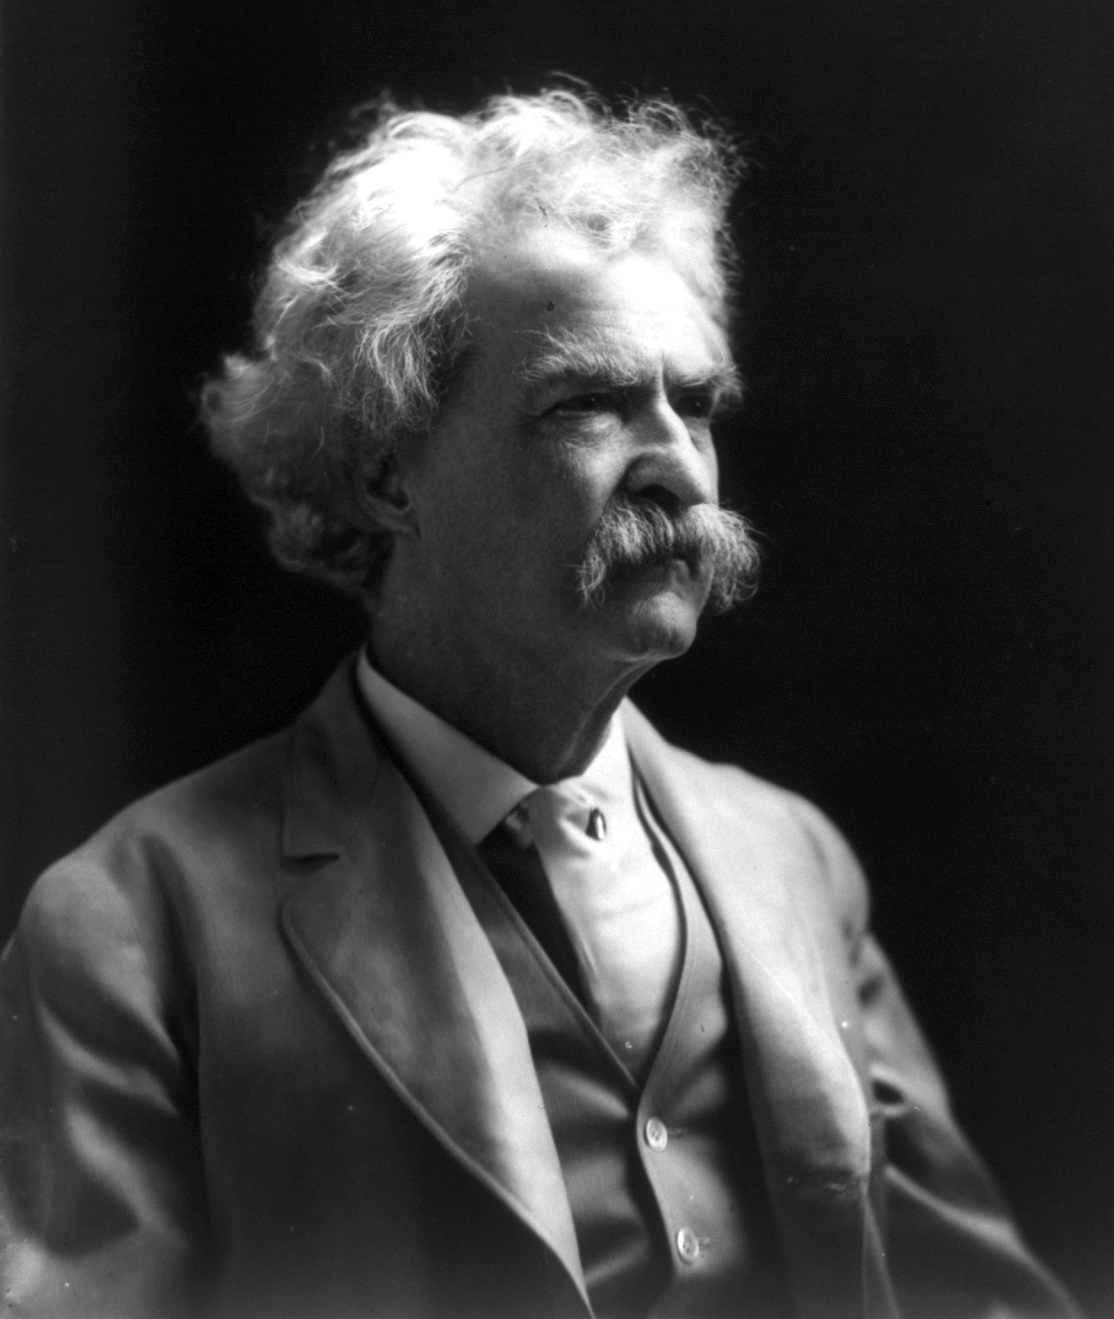 Mark Twain left instructions not to publish his autobiography until 100 years after his death, which is now.